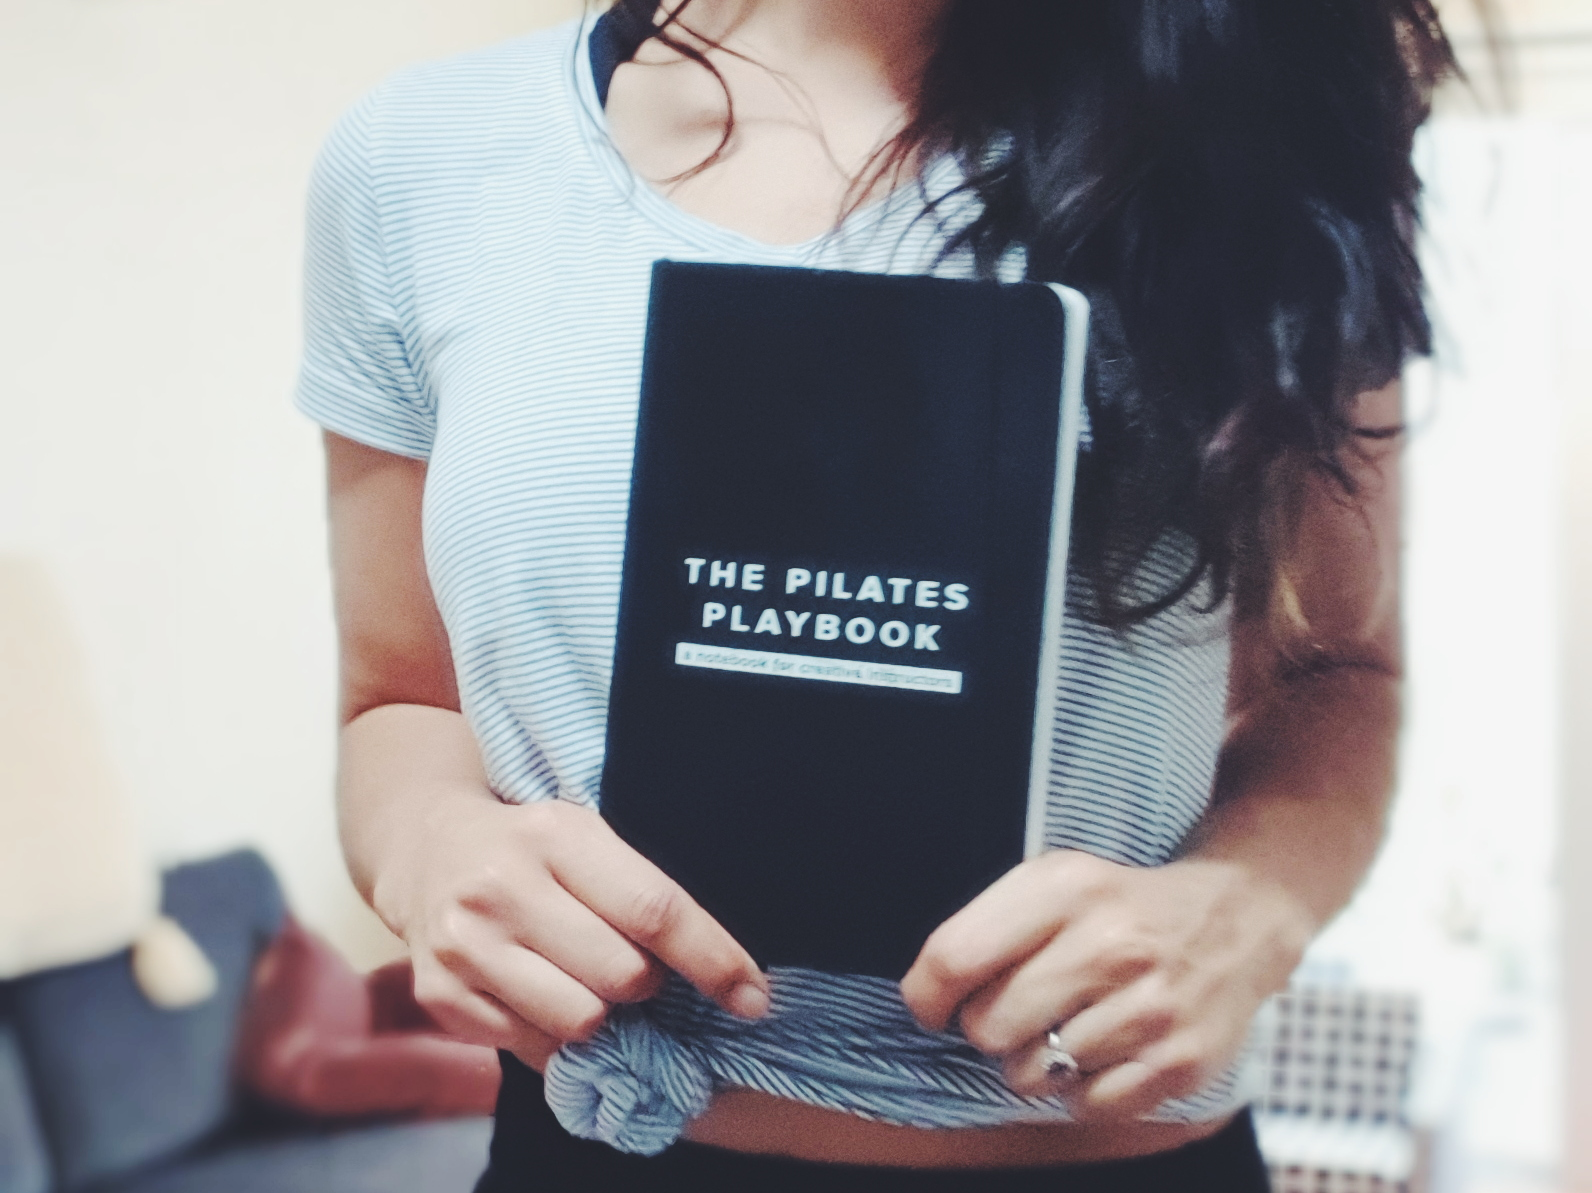 The Pilates Playbook - Keep all your workshop notes, ideas, inspiration and class plans in the one place! Click here to find out more